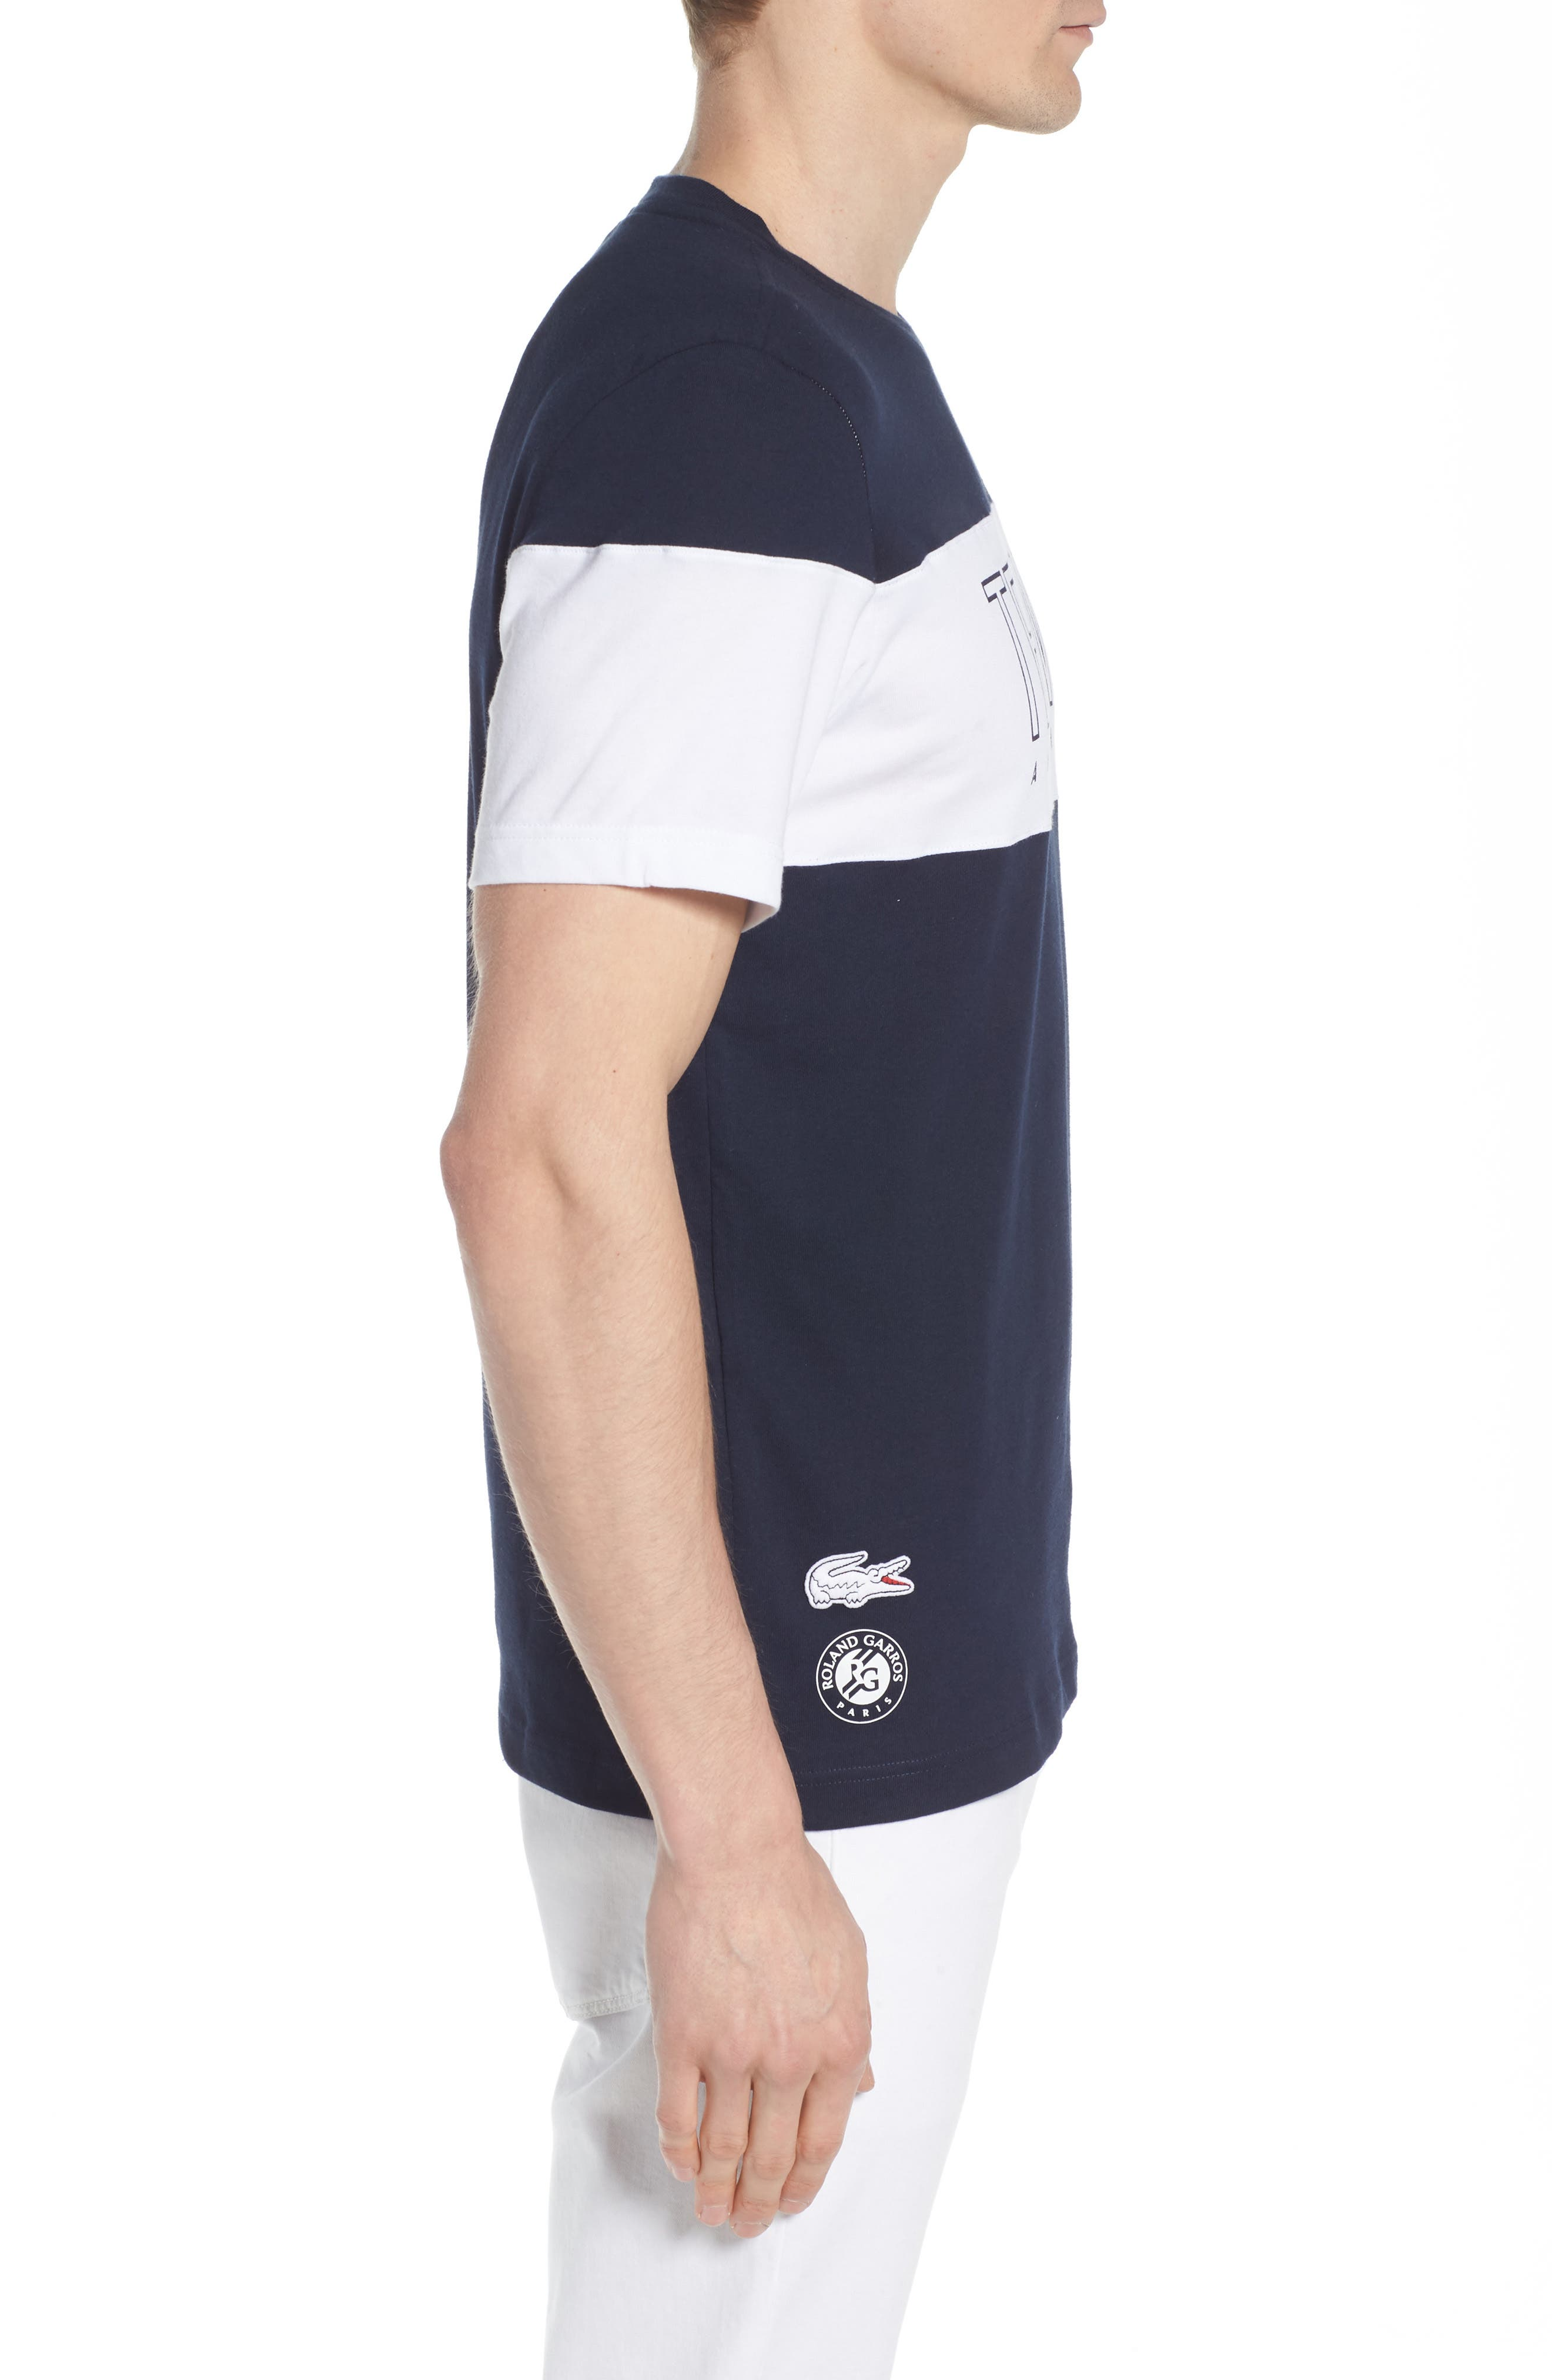 Tennis Anyone Tech Jersey T-Shirt,                             Alternate thumbnail 3, color,                             Navy Blue/ White